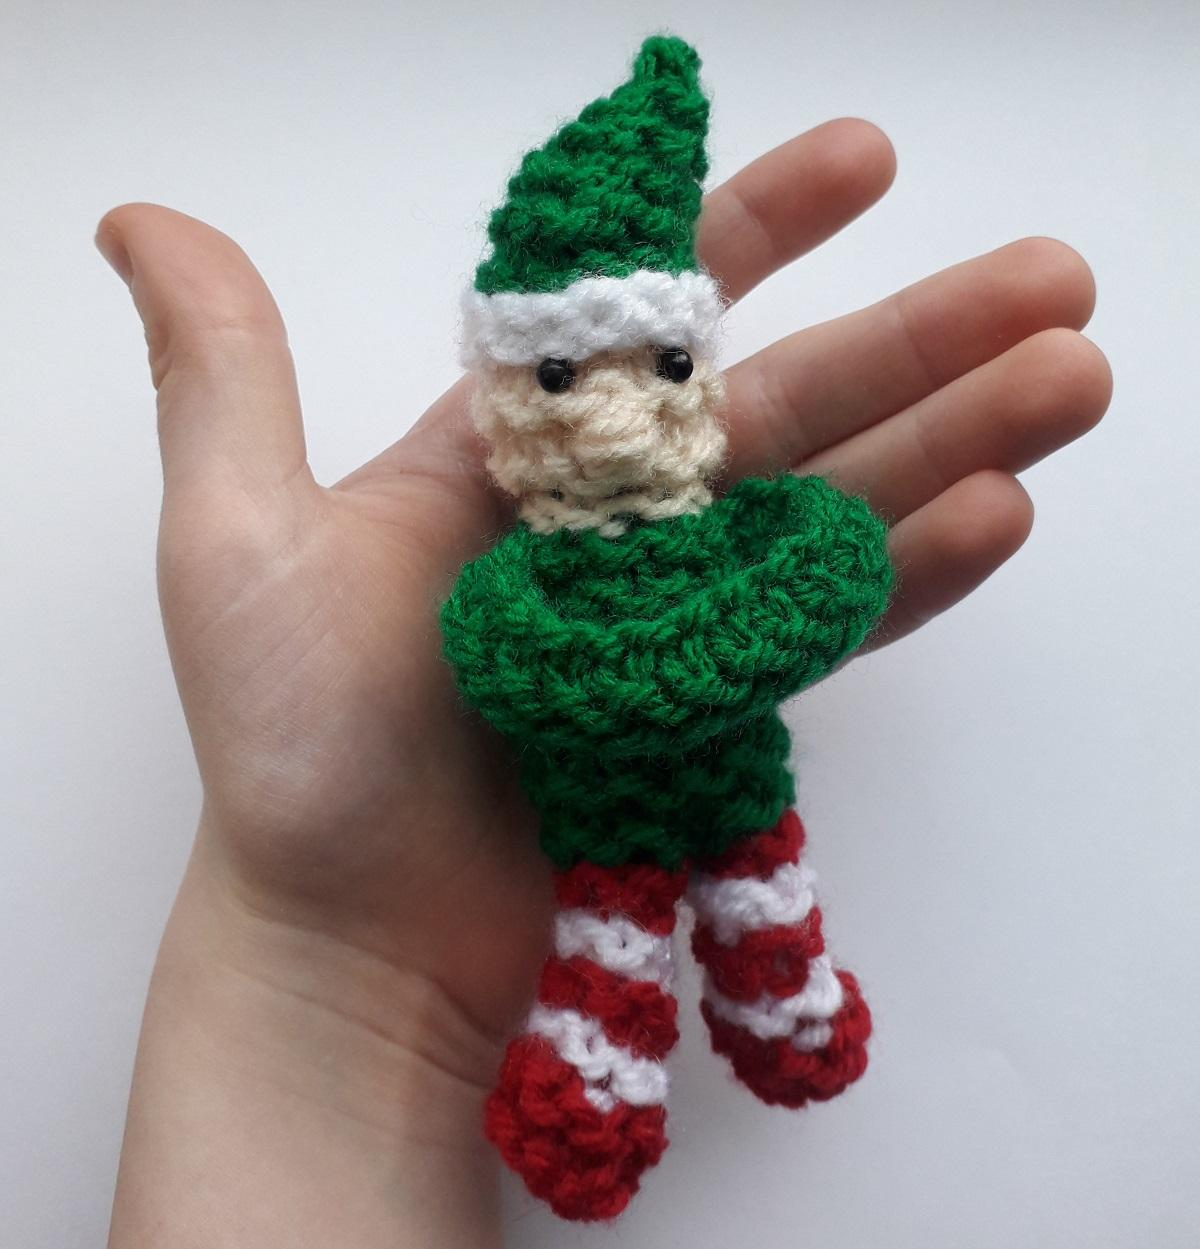 Knit your own Snuggle Elf for people with dementia